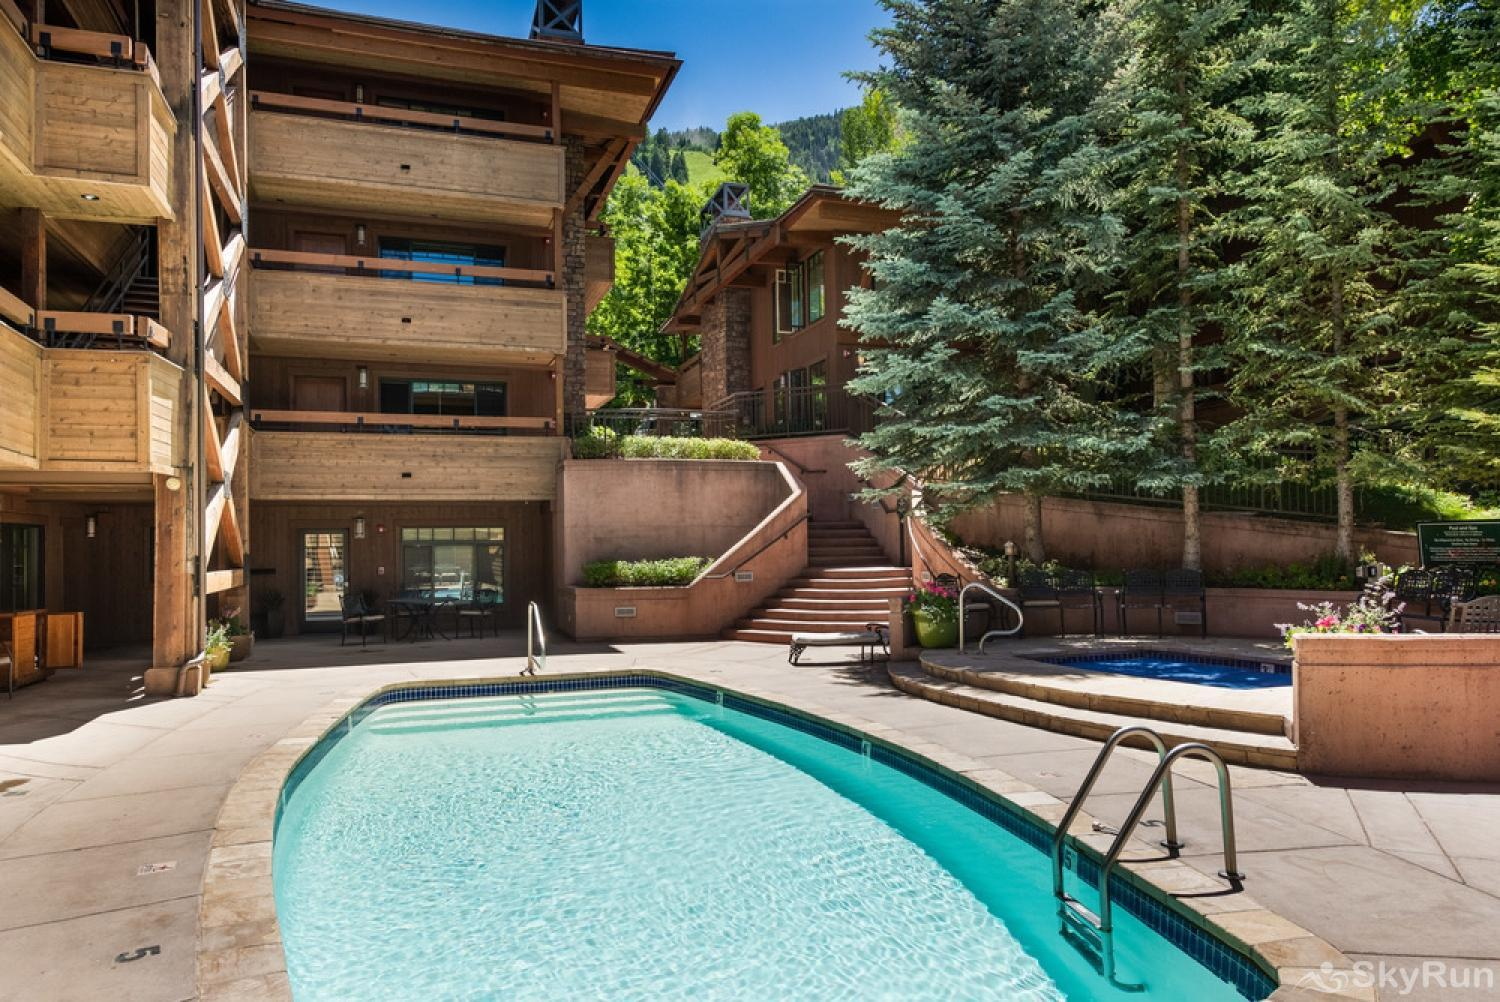 718 S. Mill St. Fasching Haus #4 SkyRun Fasching Haus #4 Pool and Hot Tub